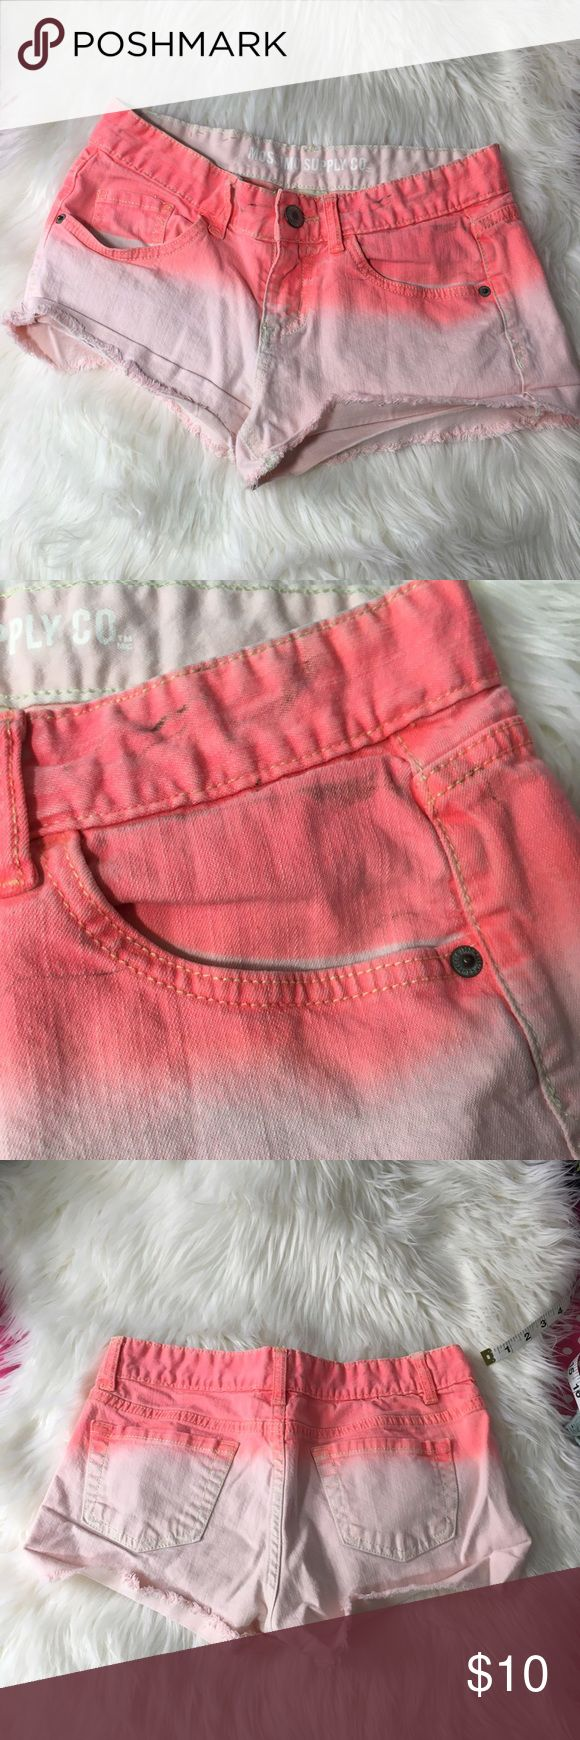 Beautiful Orange Ombre Shorts Size 7 Small marks pictured above, otherwise great condition price is firm -I do not accept offers in the comments so please make all reasonable offers using the offer button only. :)  -NO TRADES  -NO HOLDS 🚫 -I ship every Tuesday and Thursday  Your purchase is going to help me graduate community college with as little debt as possible. Thank you! Mossimo Supply Co Shorts Jean Shorts